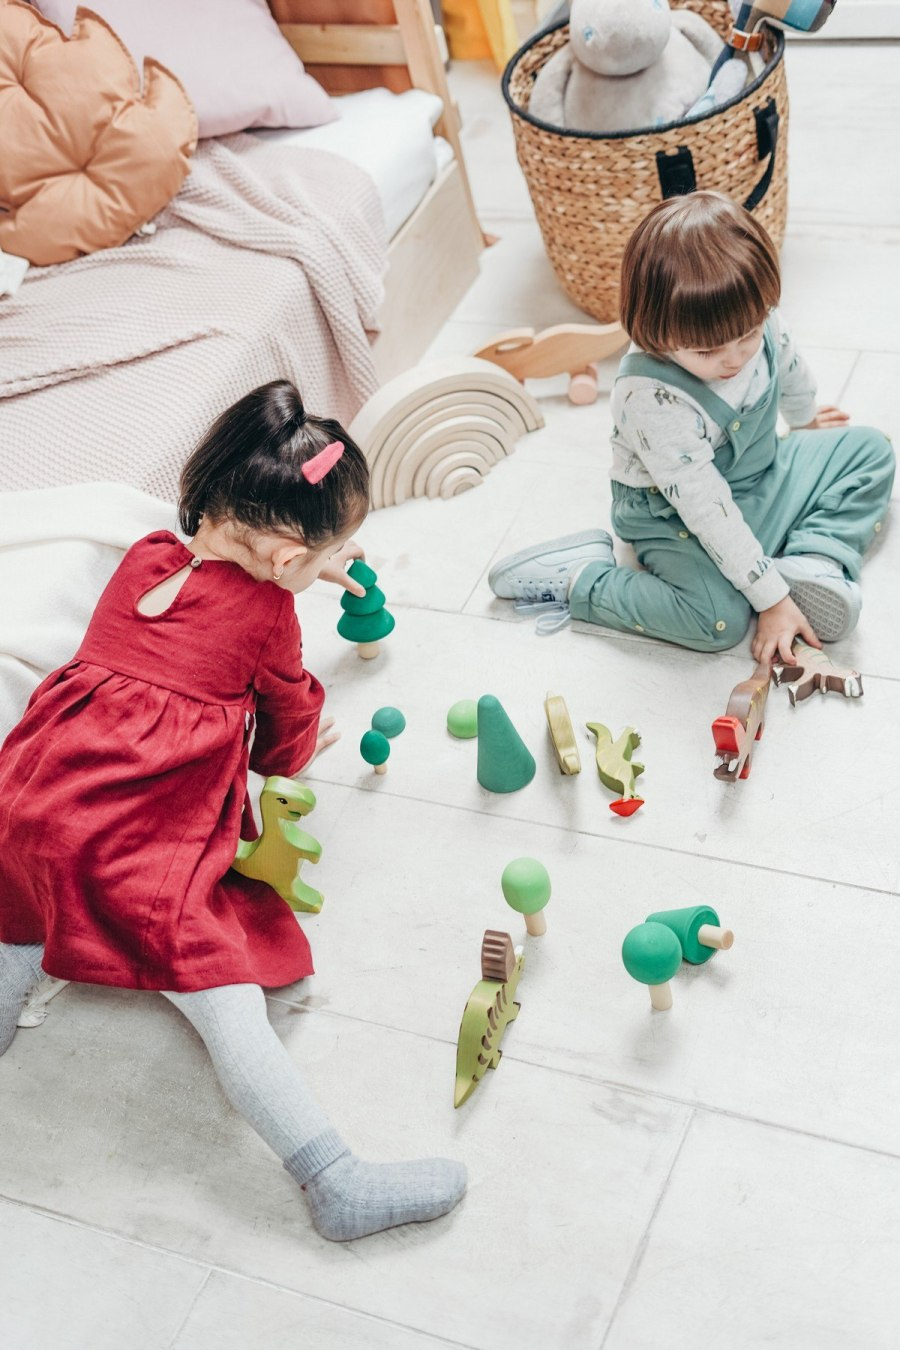 Play enables children to practice the language skills they have learned and build on their expanding vocabulary. Interacting with adults and peers also enables children to refine their speech sounds through listening to others.